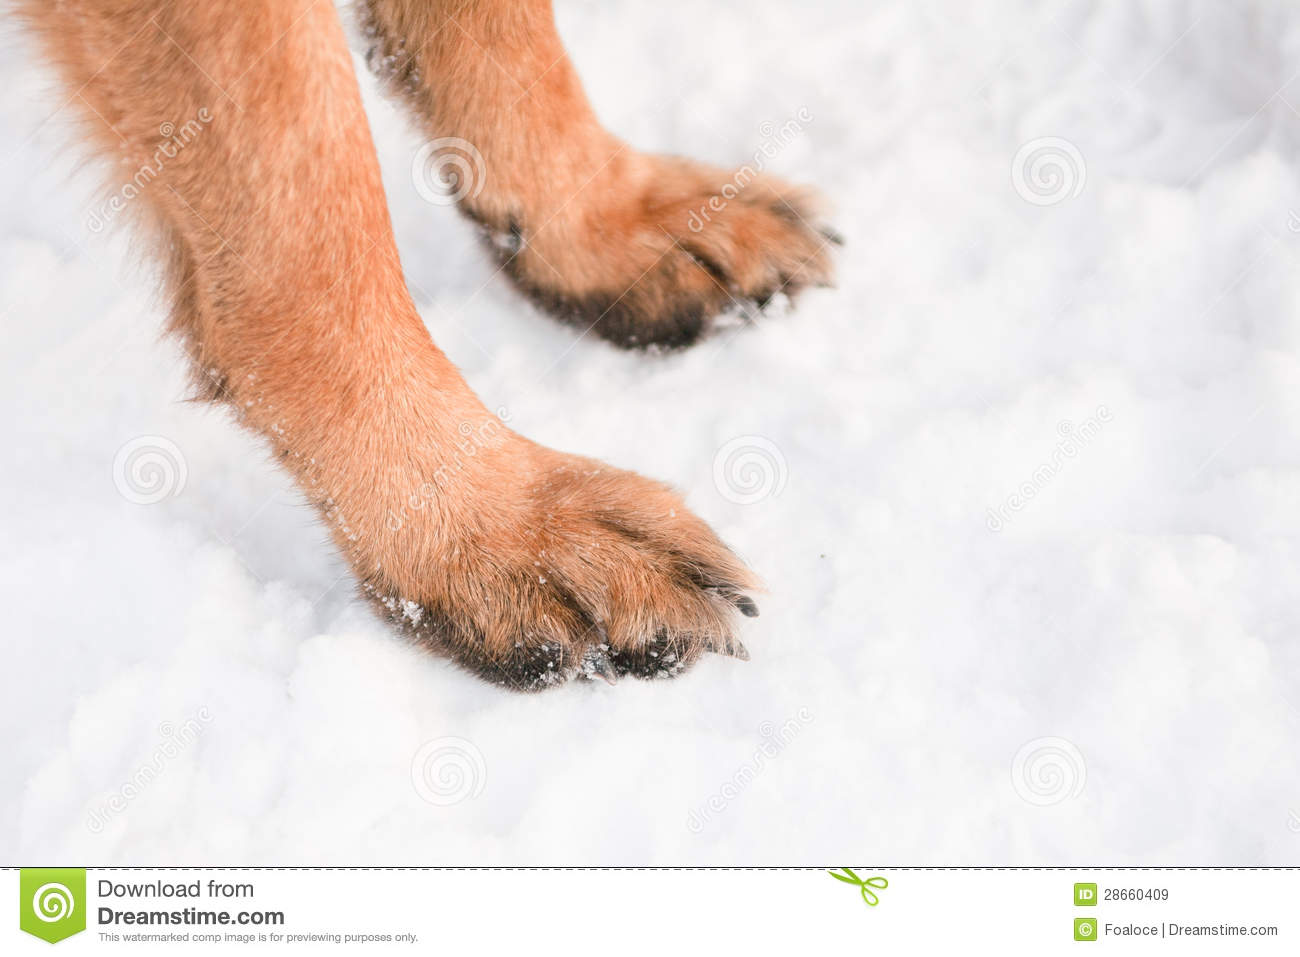 Dog Feet Royalty Free Stock Images - Image: 28660409